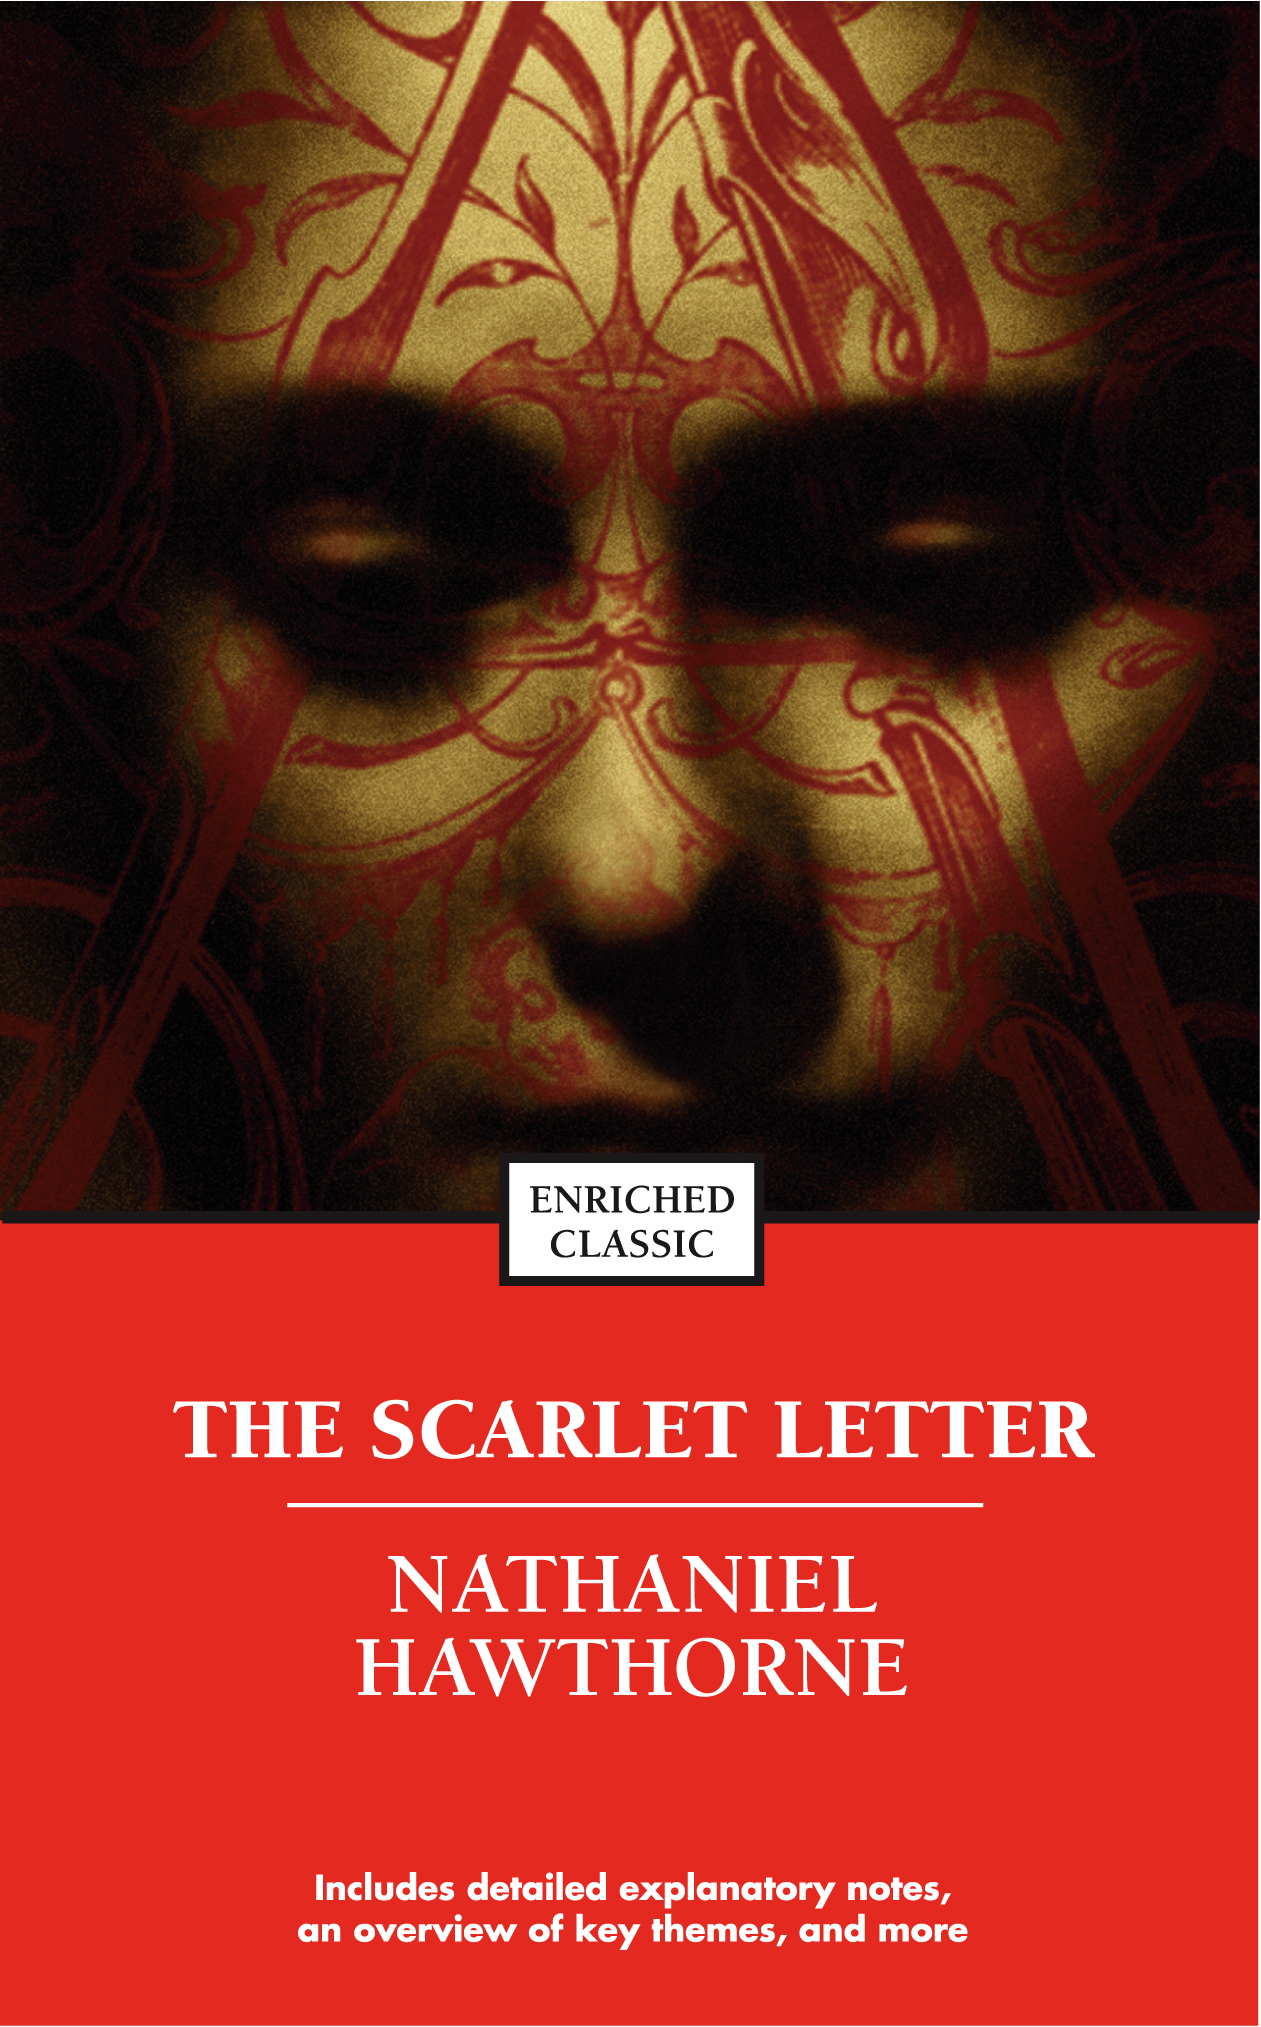 the reminders of immorality in the novel the scarlet letter by nathaniel hawthorne The scarlet letter most obviously symbolizes hester's sin: adultery she was forced to wear it as punishment, a cruel reminder of her immorality dynamic meaning of the scarlet letter themes, symbols add depth to a story nathaniel hawthorne's novel the scarlet letter takes.